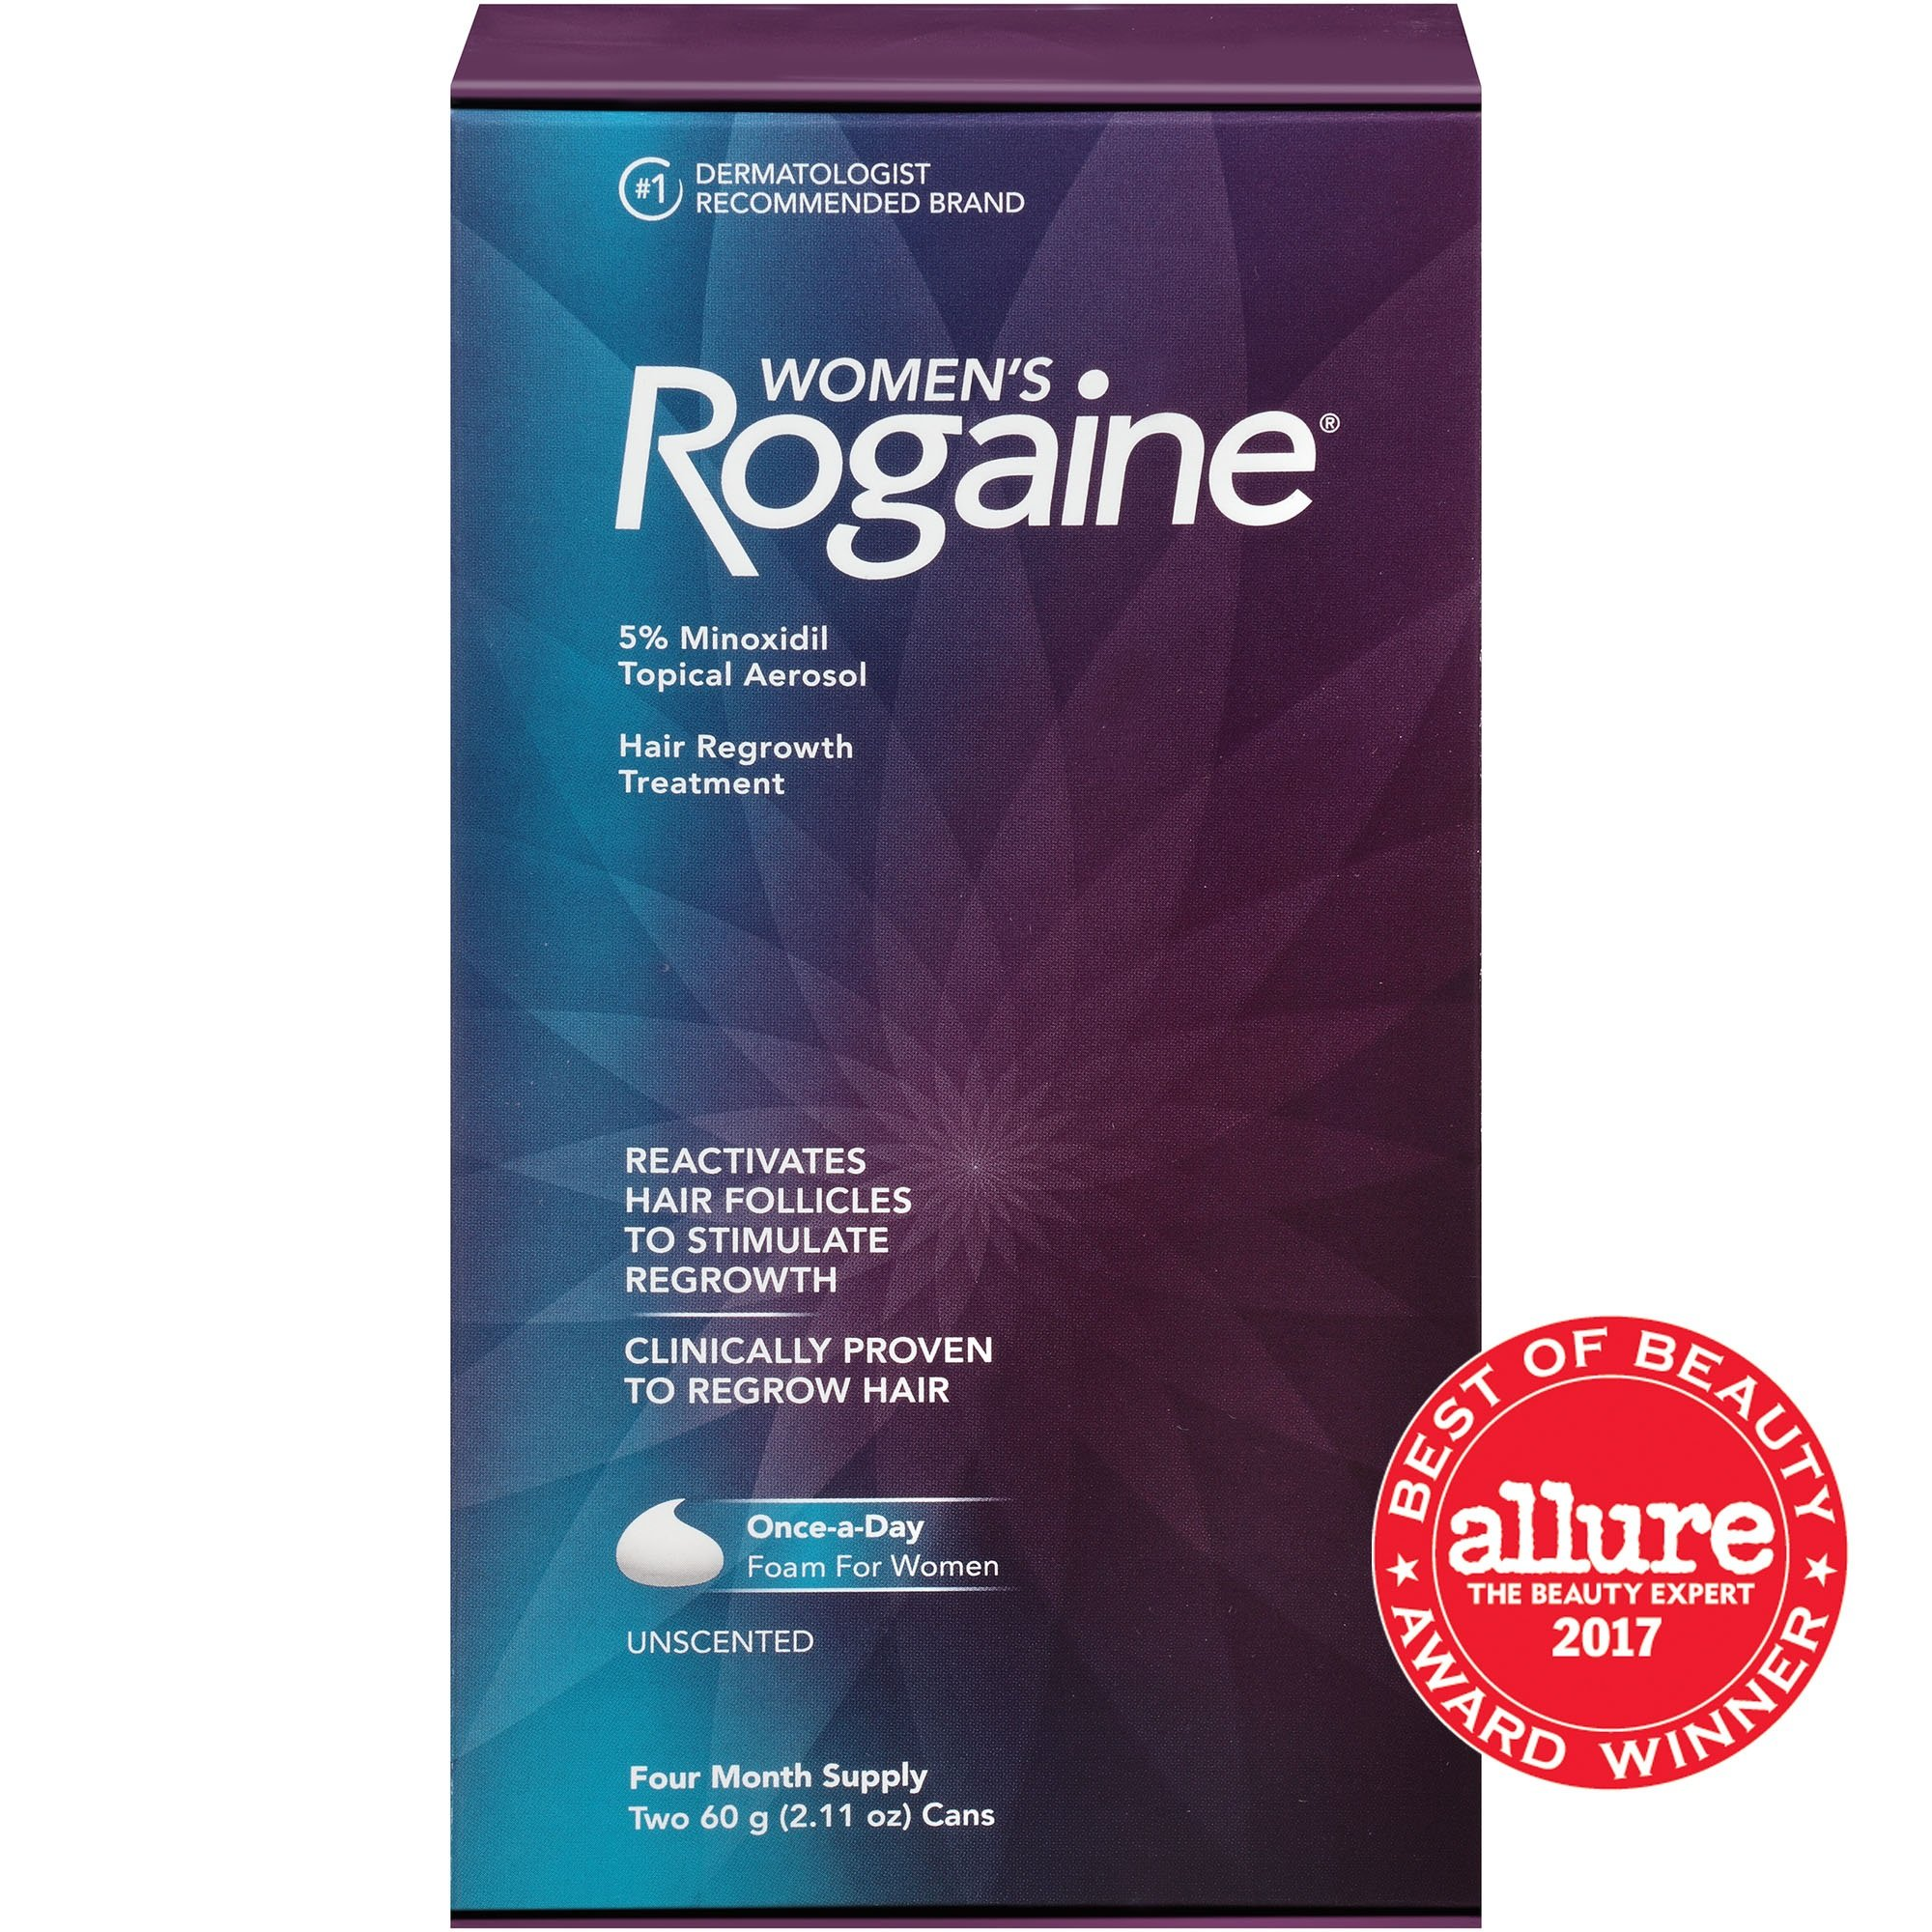 Women's Rogaine 5% Minoxidil Foam for Hair Thinning and Loss, Topical Treatment for Women's Hair Regrowth, 4-Month Supply by Rogaine (Image #2)